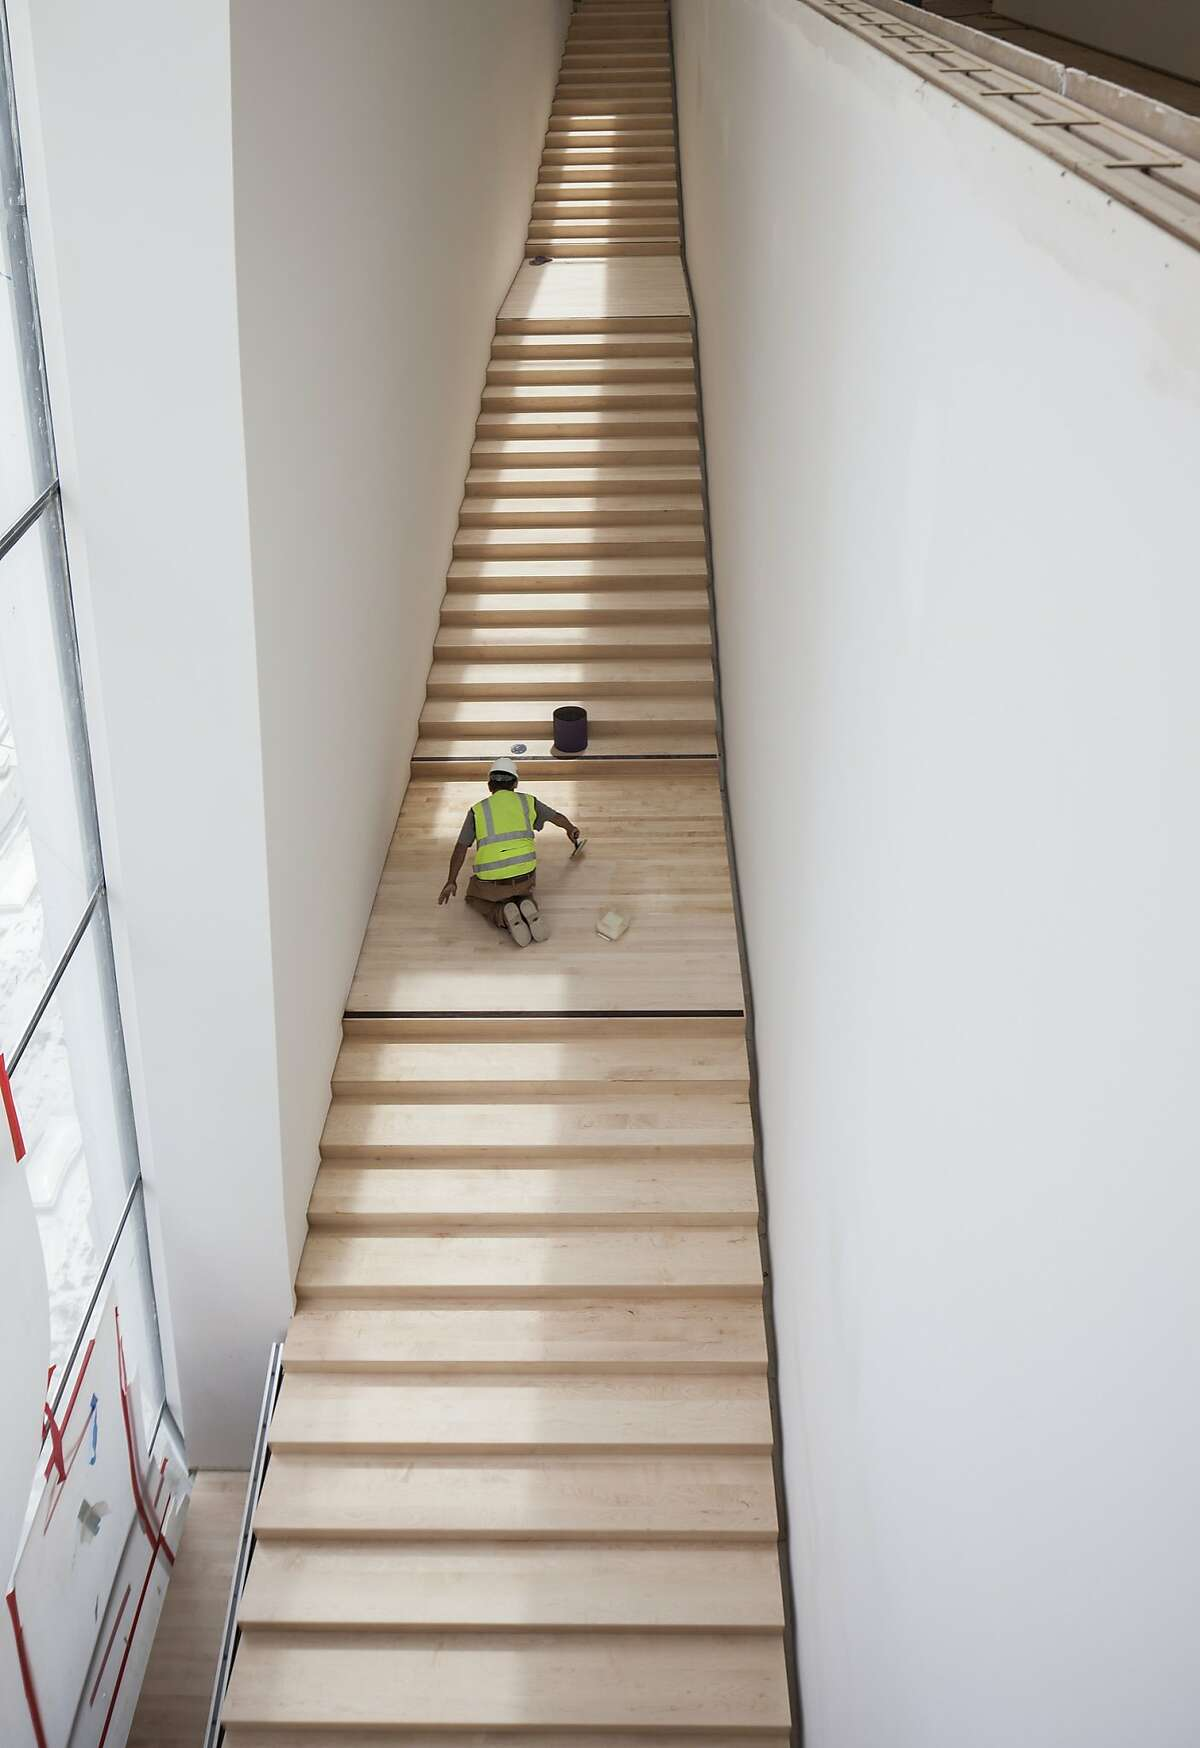 Workers put final touches on SFMOMA stairway